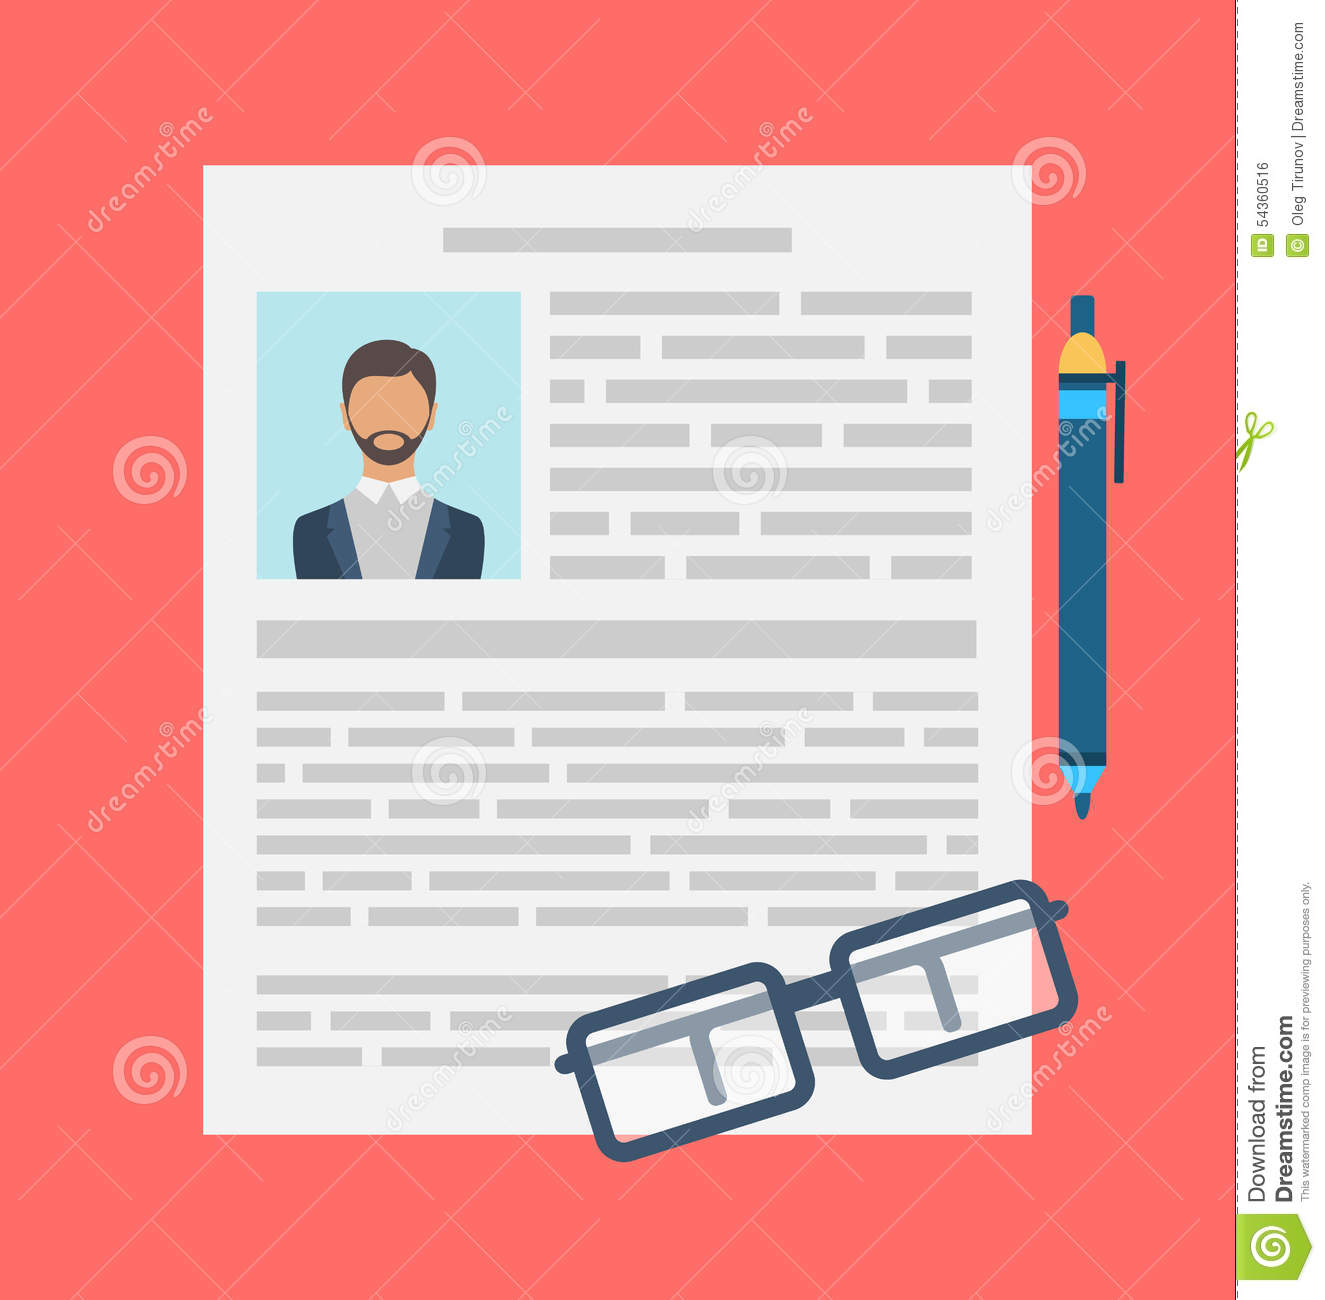 writing a business cv resume concept stock vector - illustration of